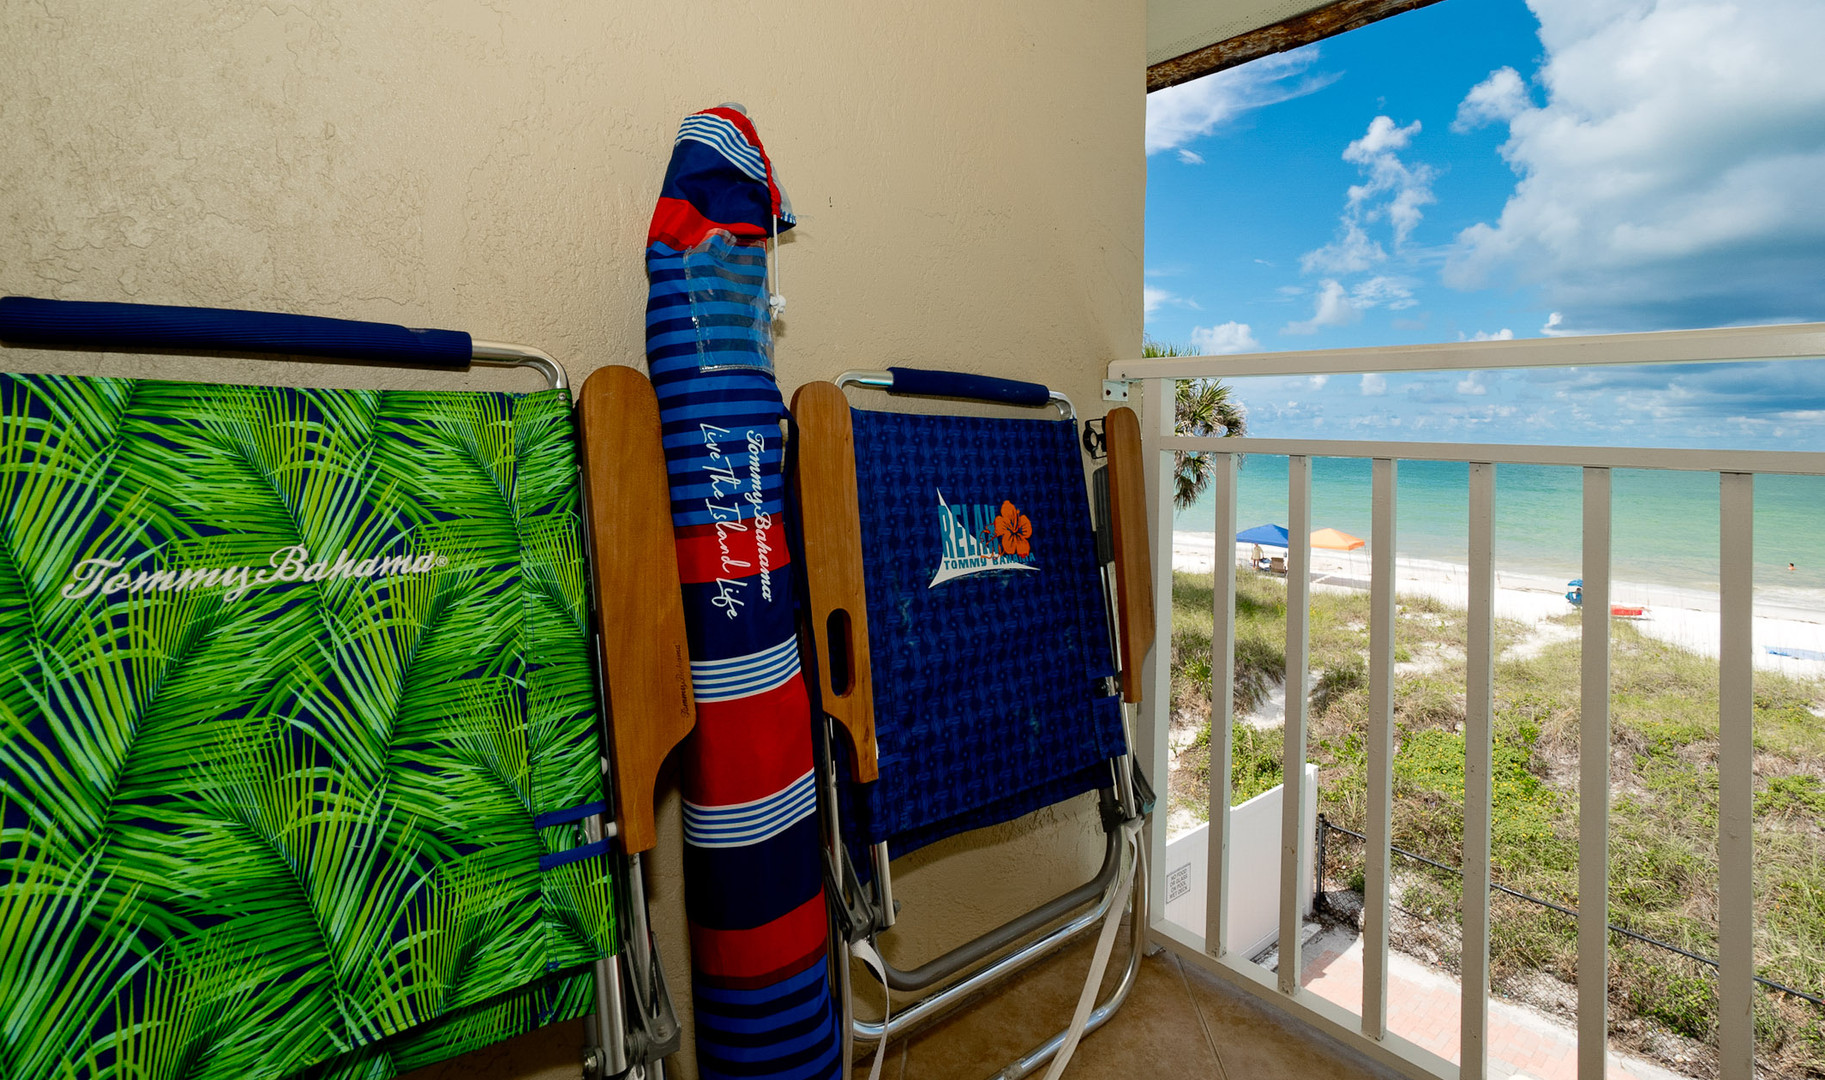 Tommy Bahama Beach Chairs and Umbrella